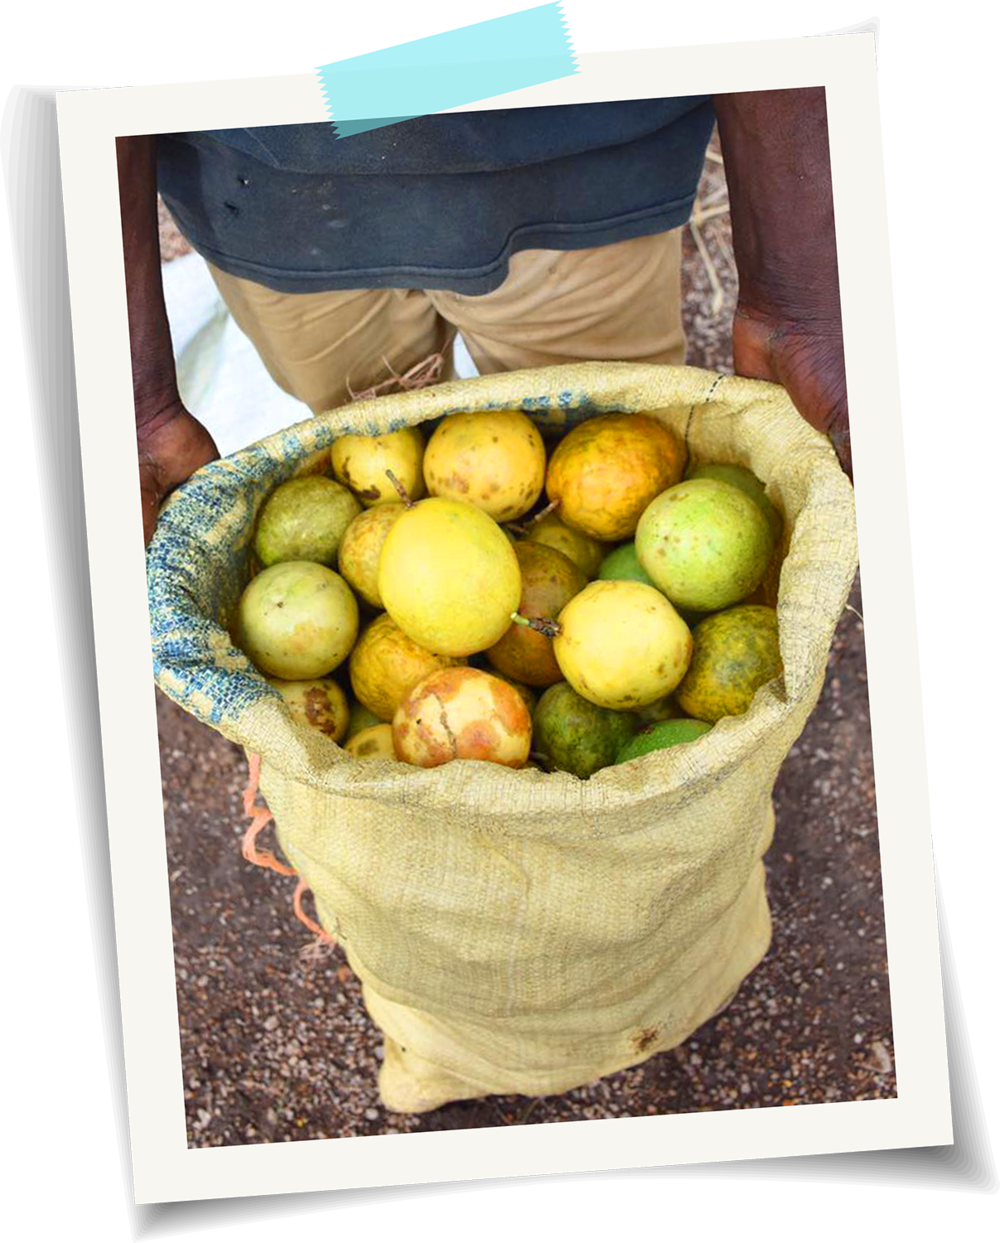 Dominican local guava farmer